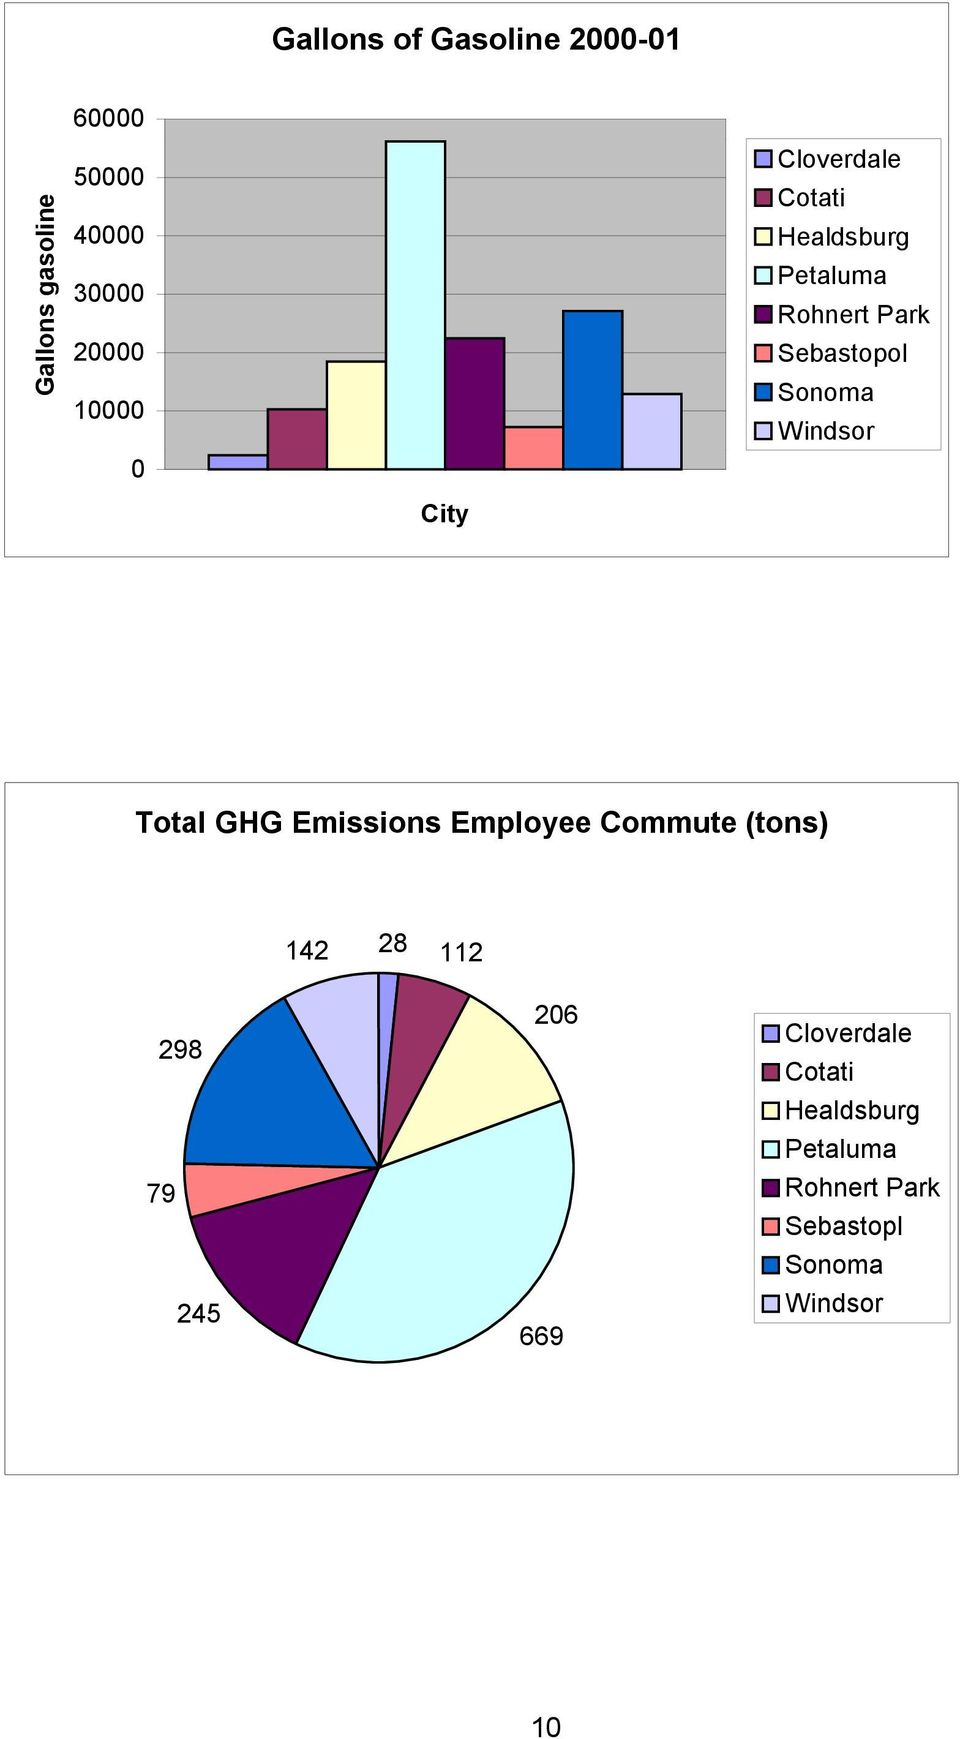 Windsor City Total GHG Emissions Employee Commute (tons) 14 8 11 98 79 45 06